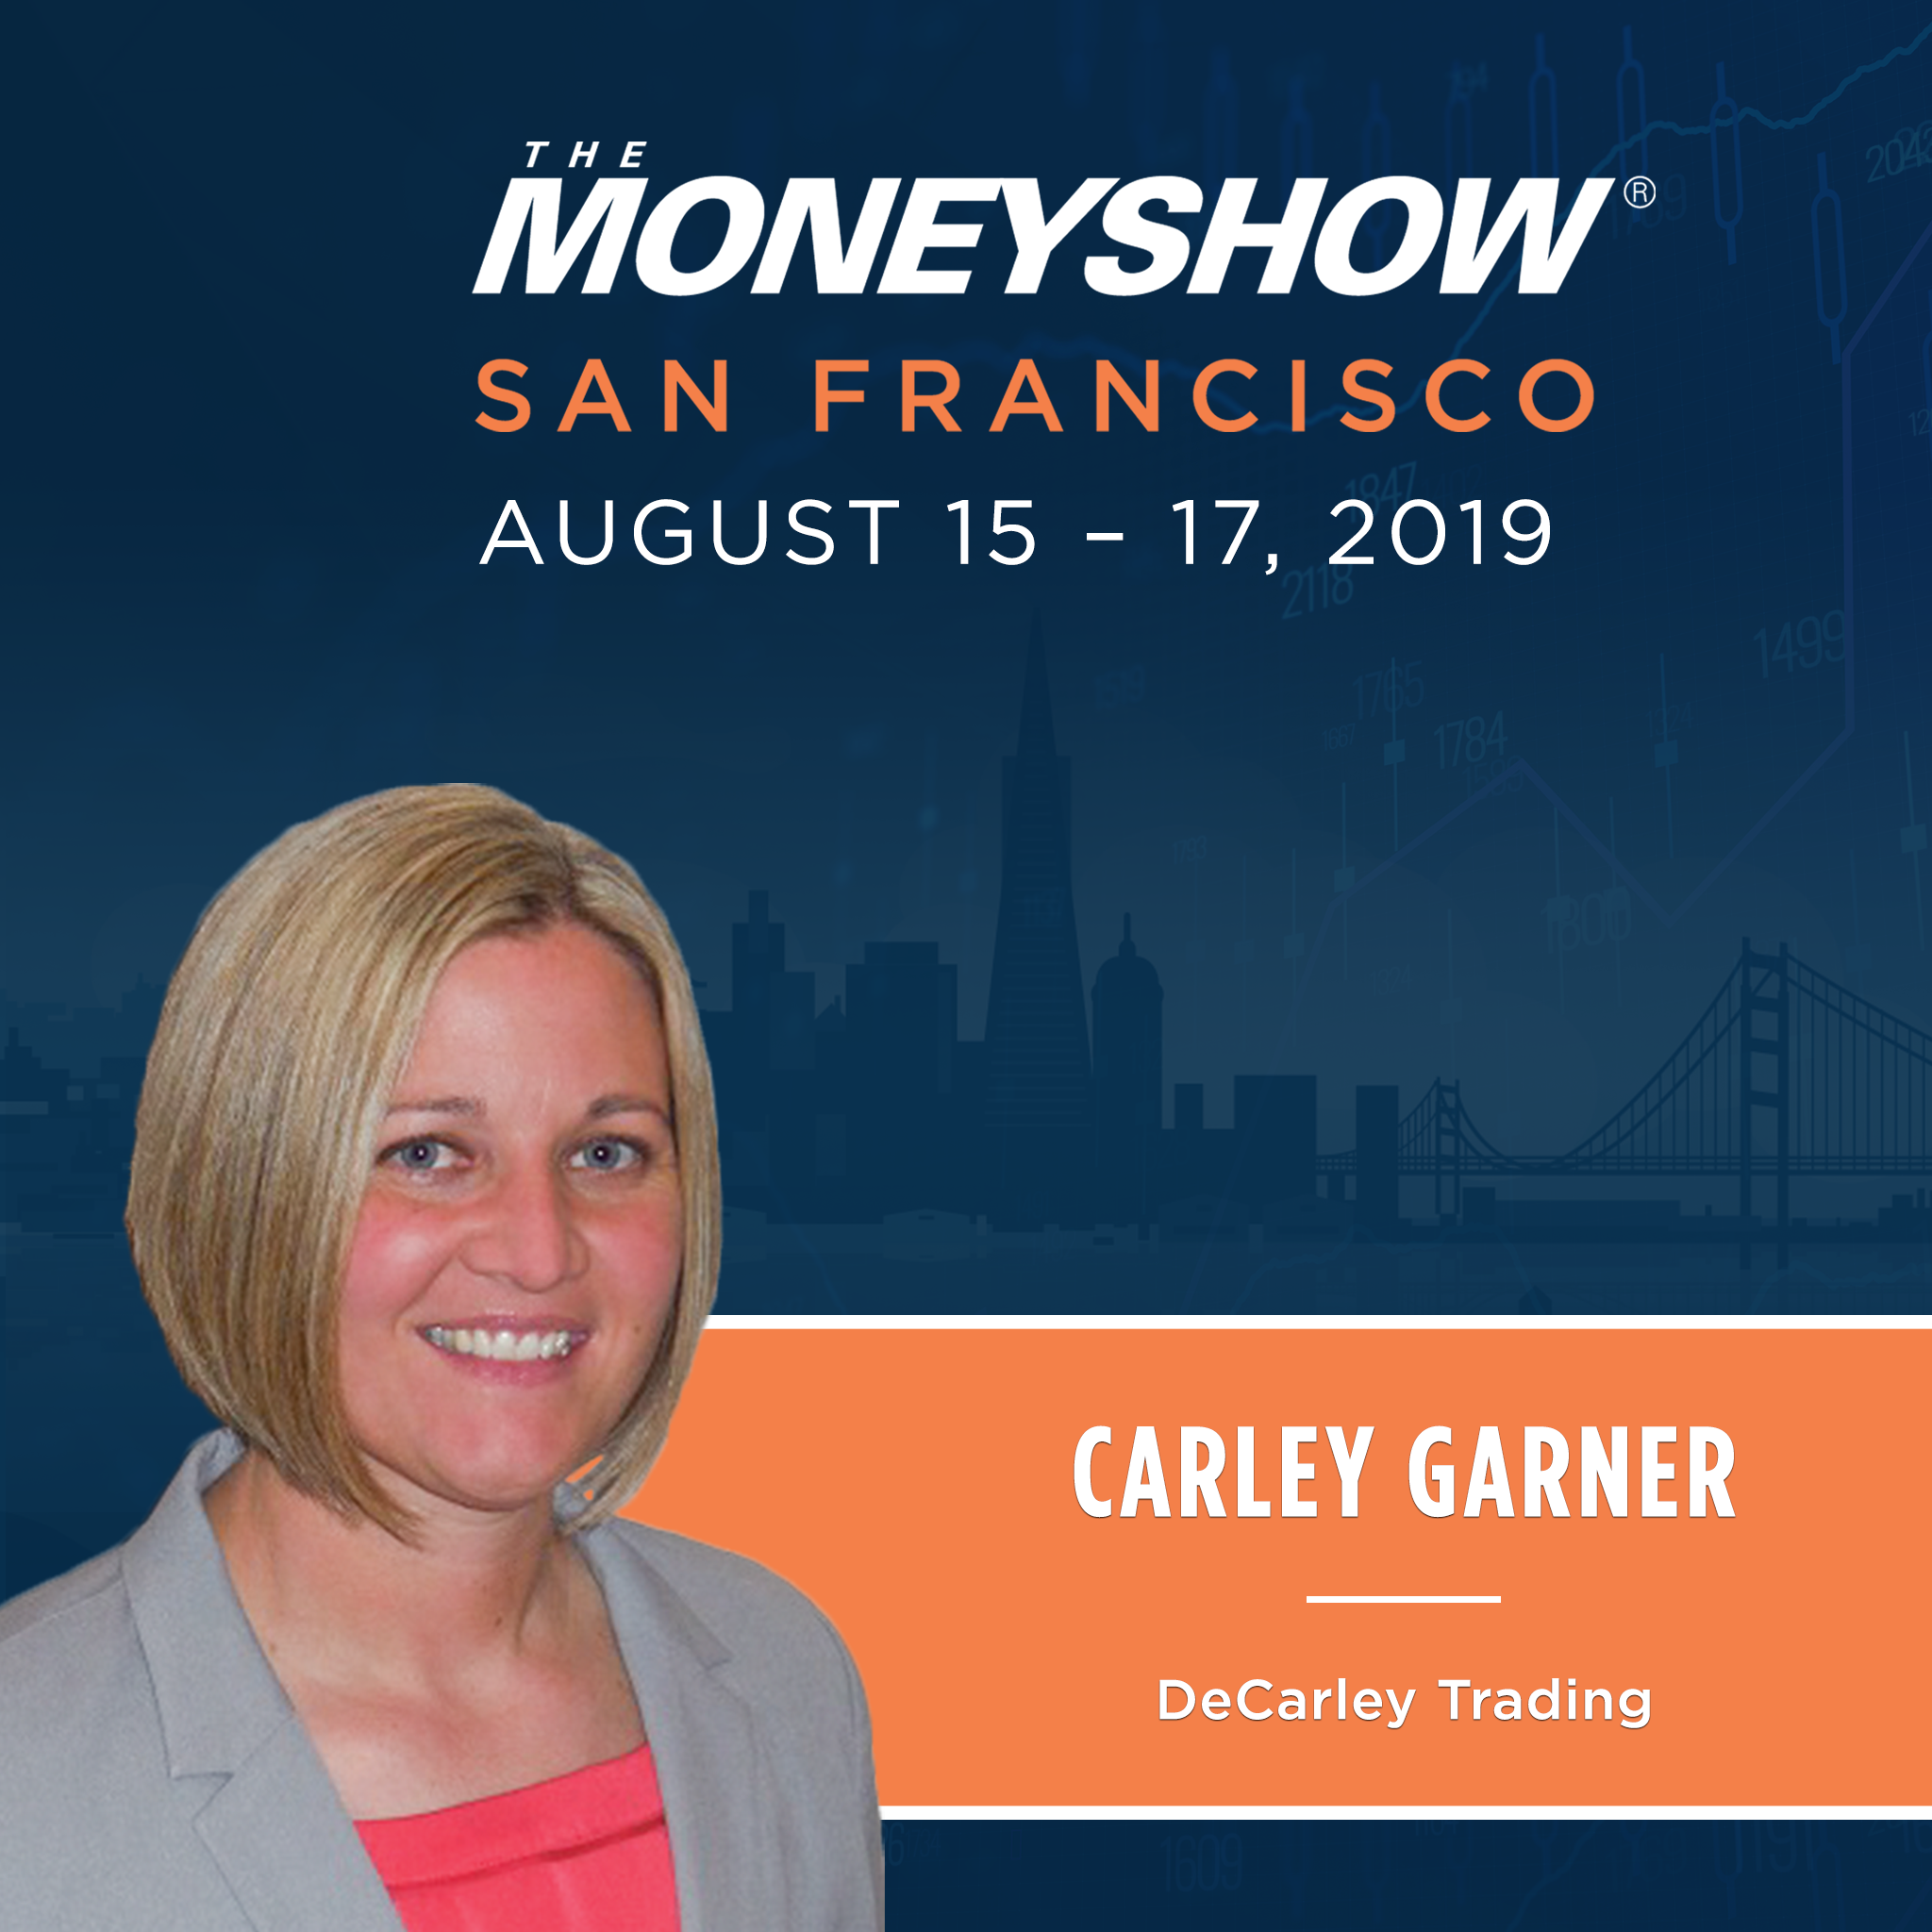 See DeCarley Trading at the MoneyShow in San Francisco